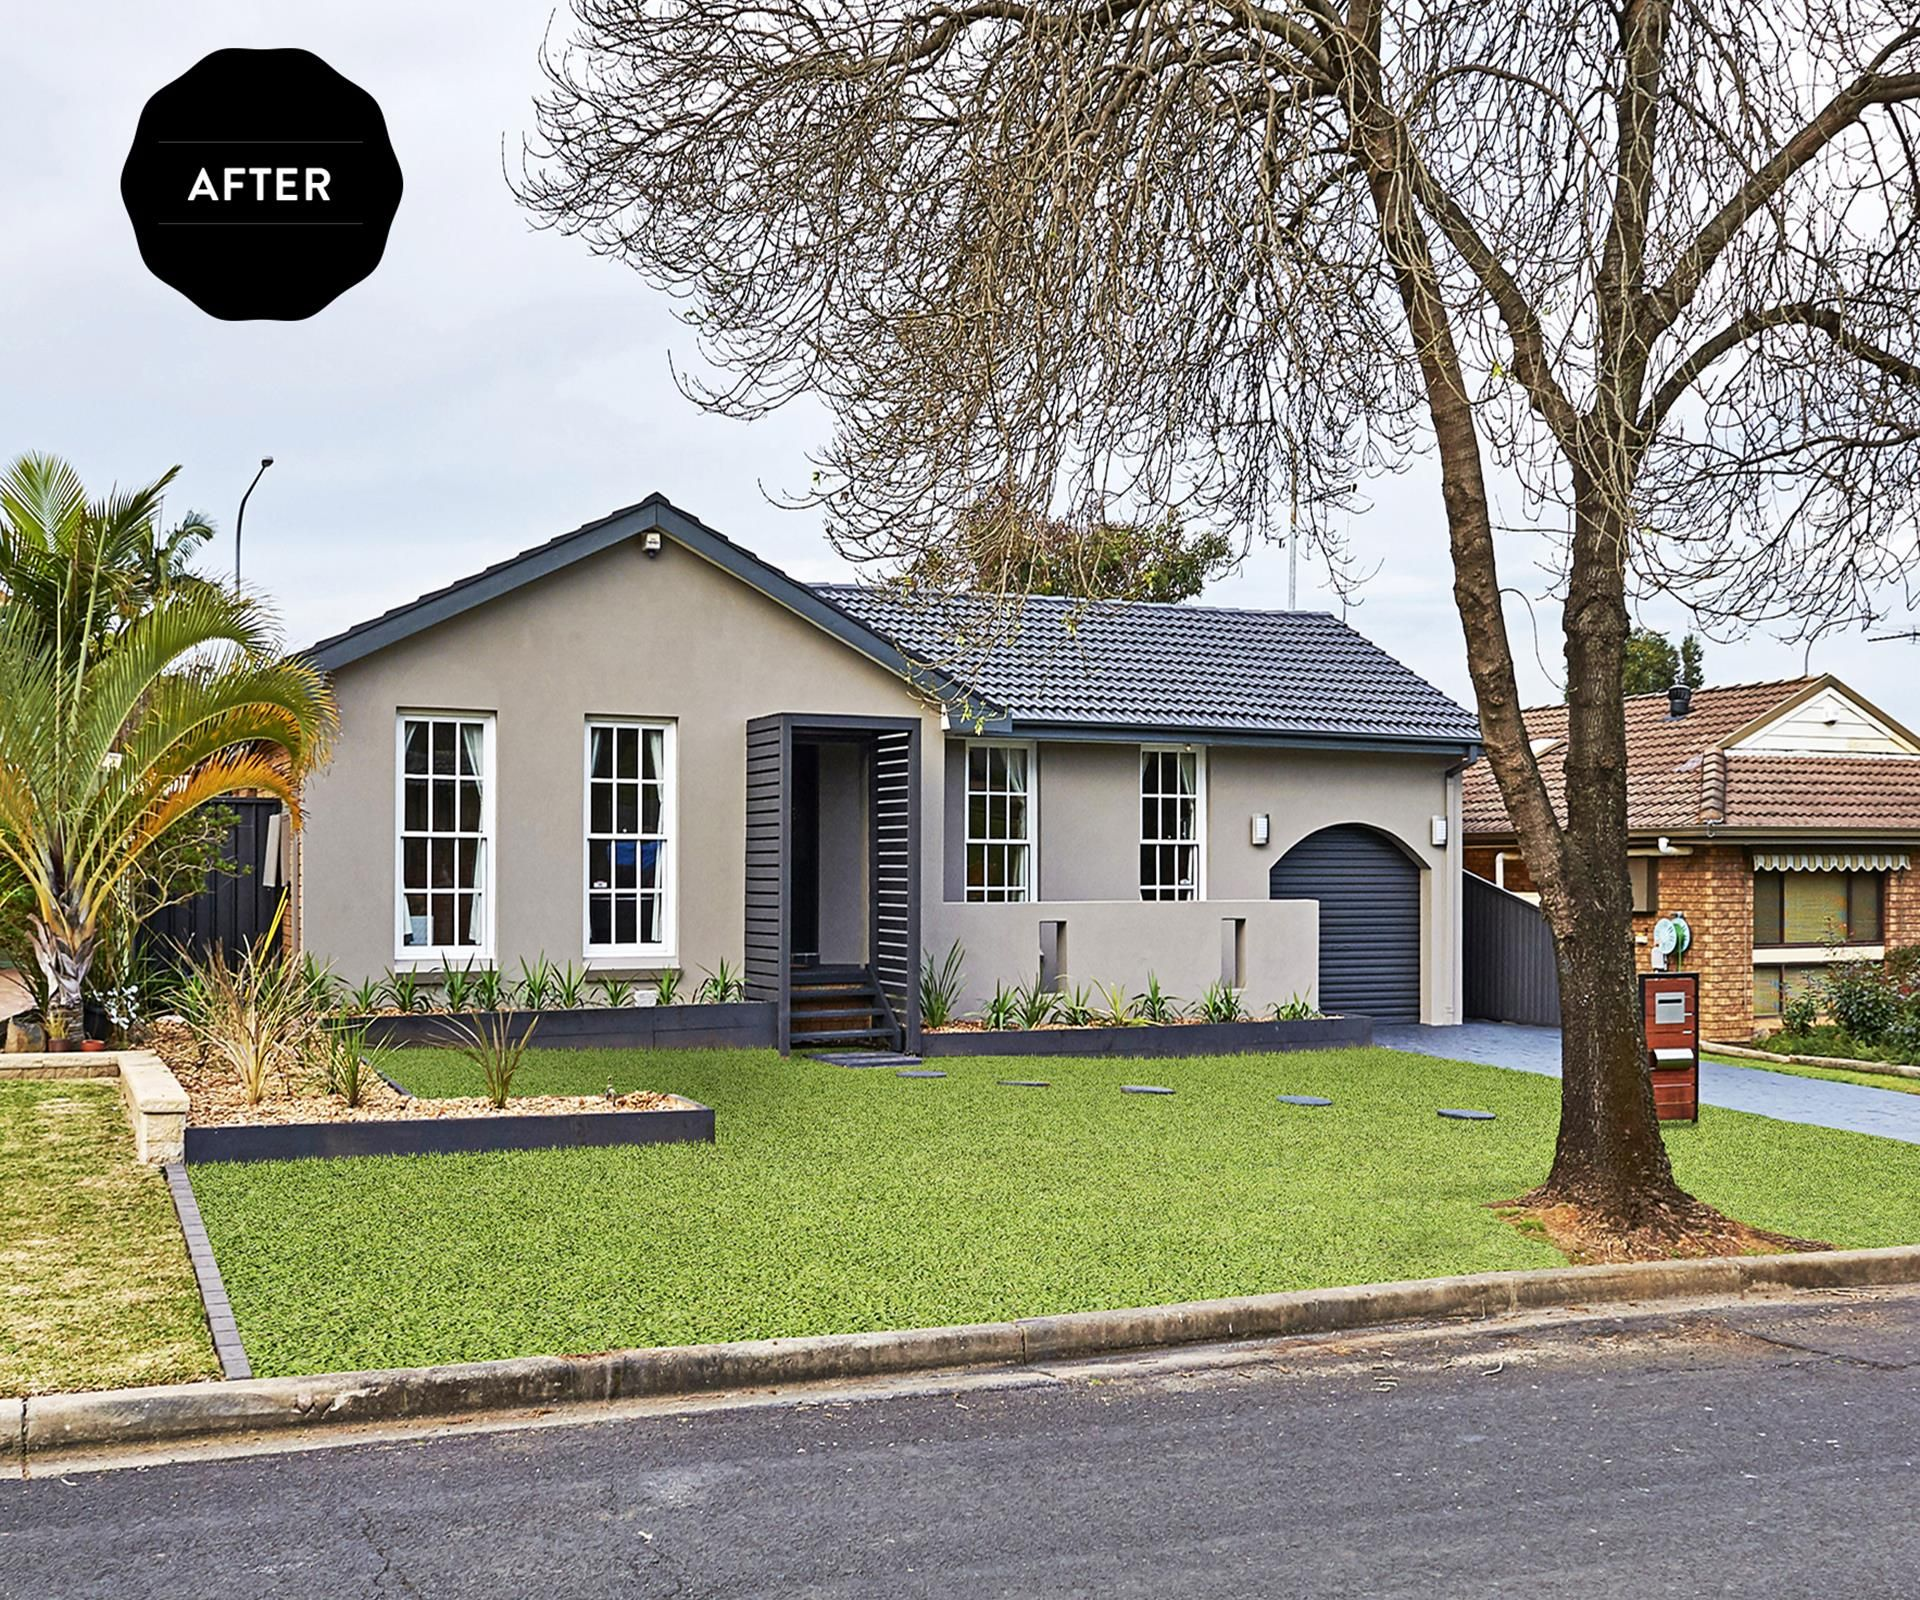 Home Makeover Shows renovation expert cherie barber shows us how it's done with a